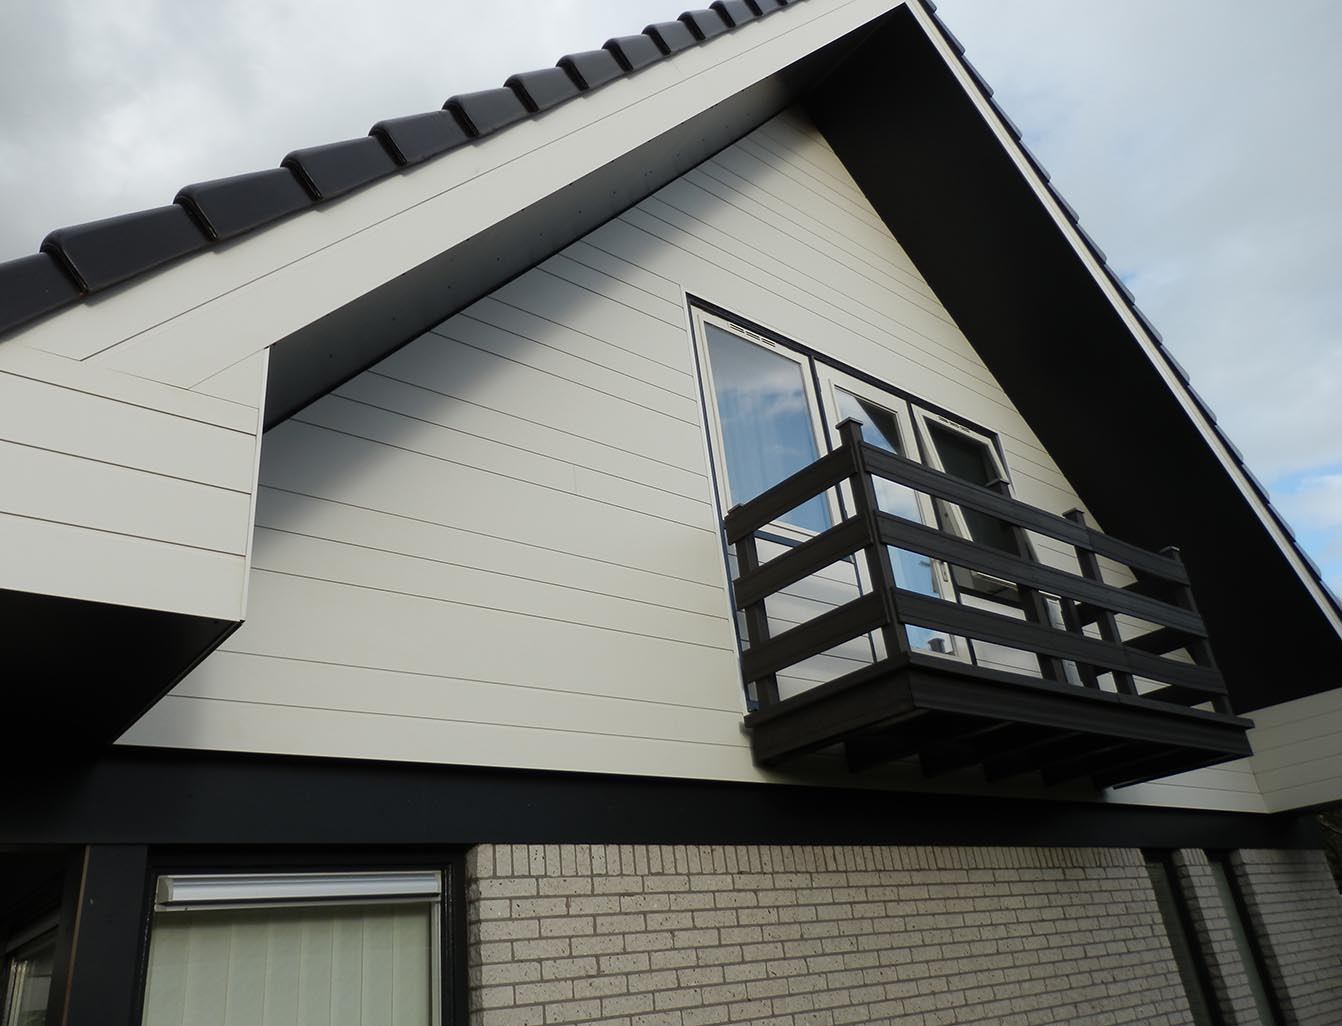 Rockpanel Exterior Cladding - Tongue & Groove (Rockpanel Lines²)